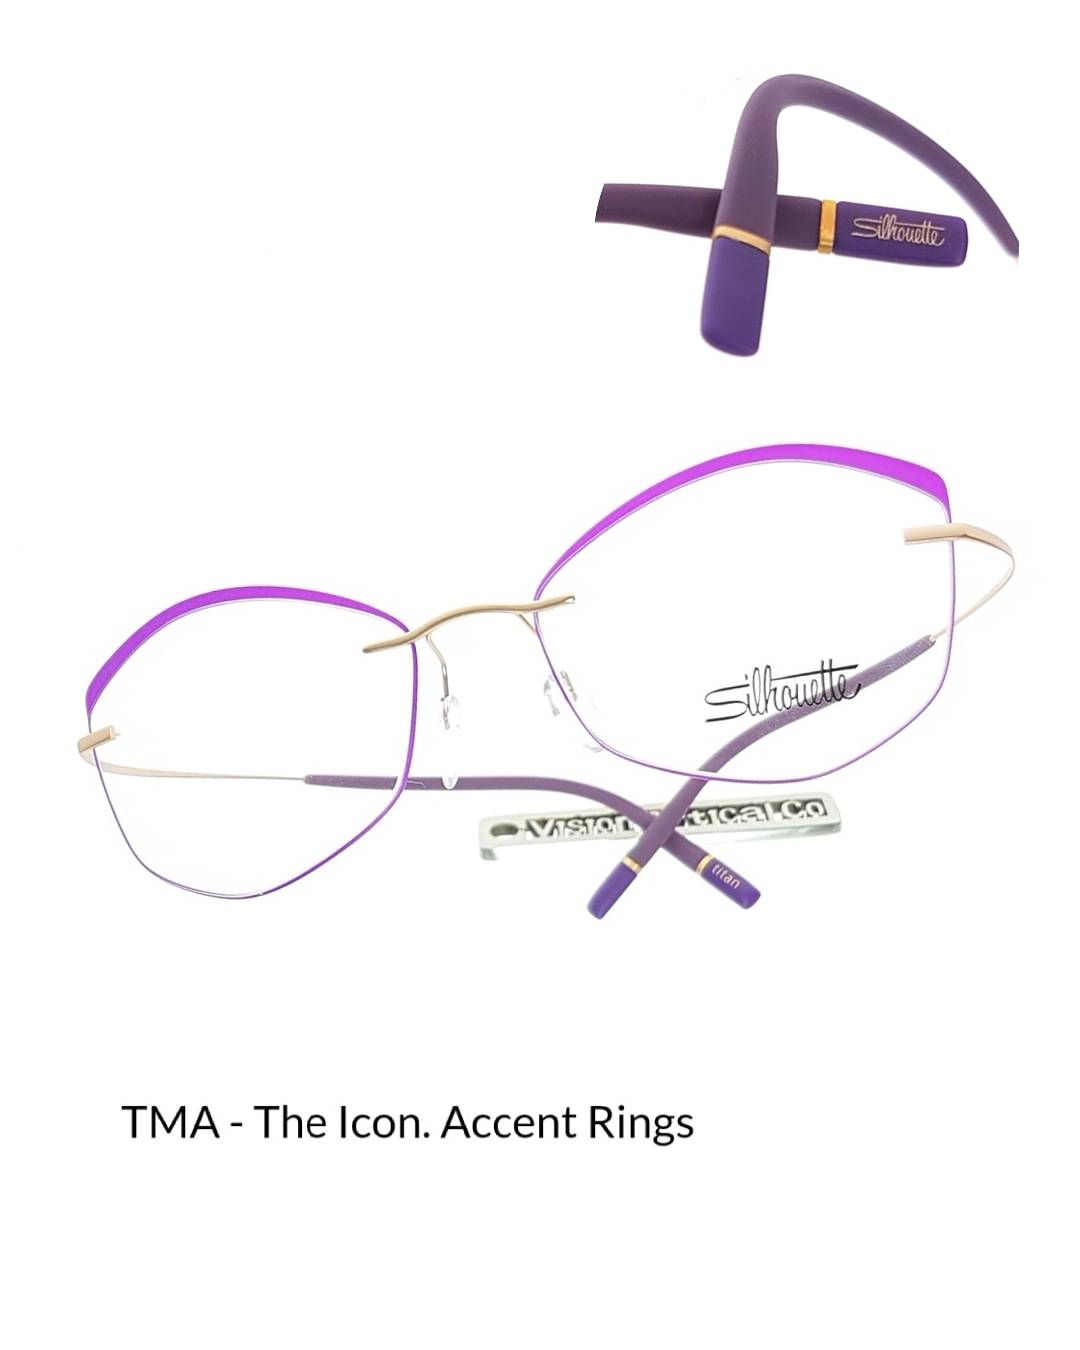 Silhouette 奧地利詩樂 TMA - The Icon. Accent Rings